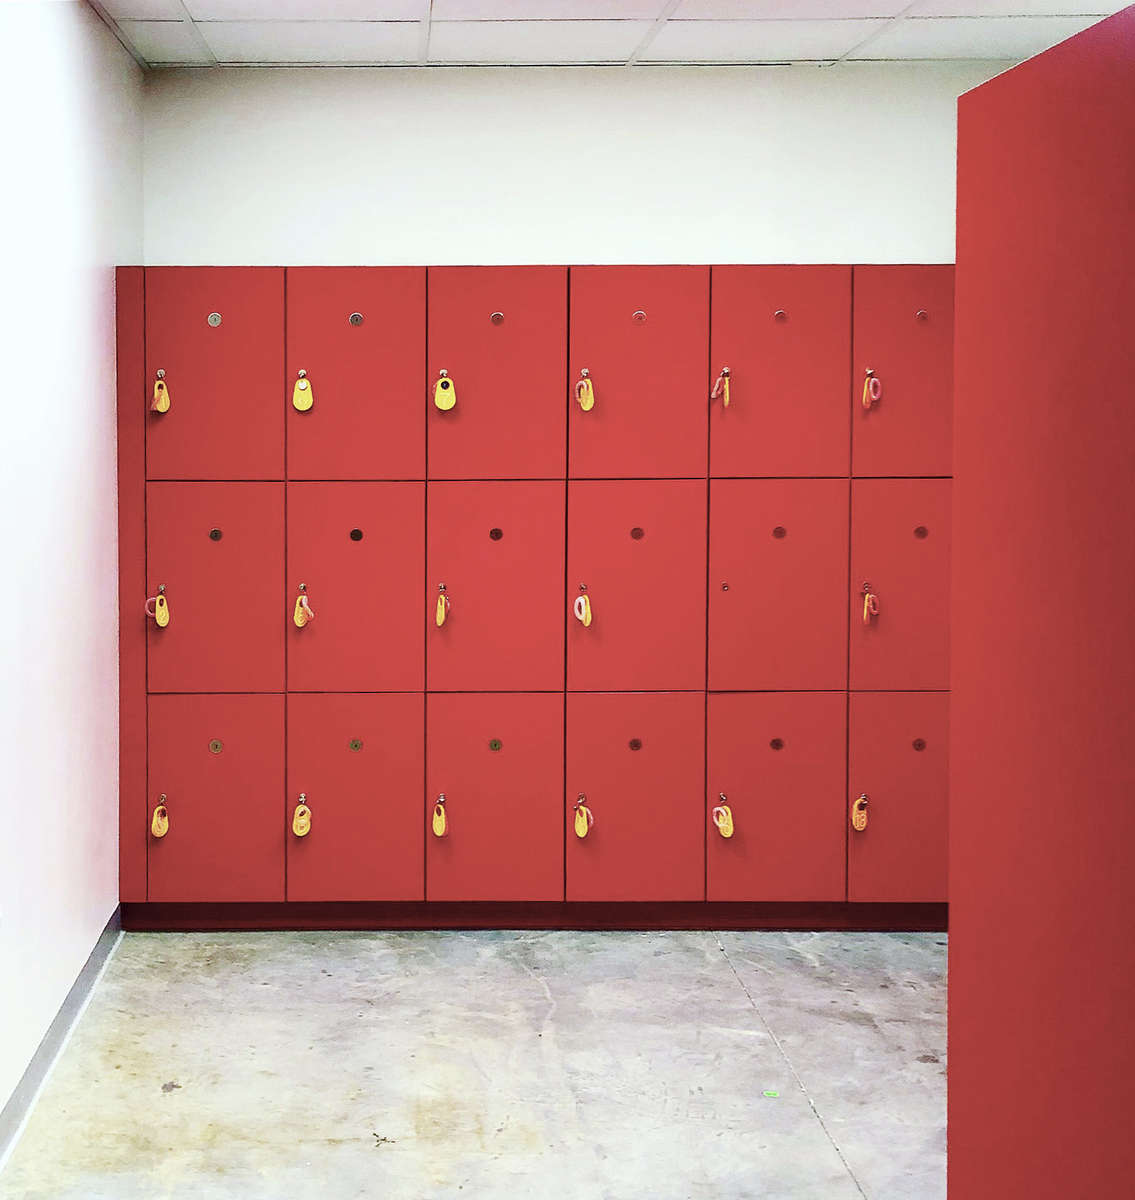 IKD was hired to design a new public self service locker room for overflow storage in the basement level of the Isabella Stewart Gardner Museum